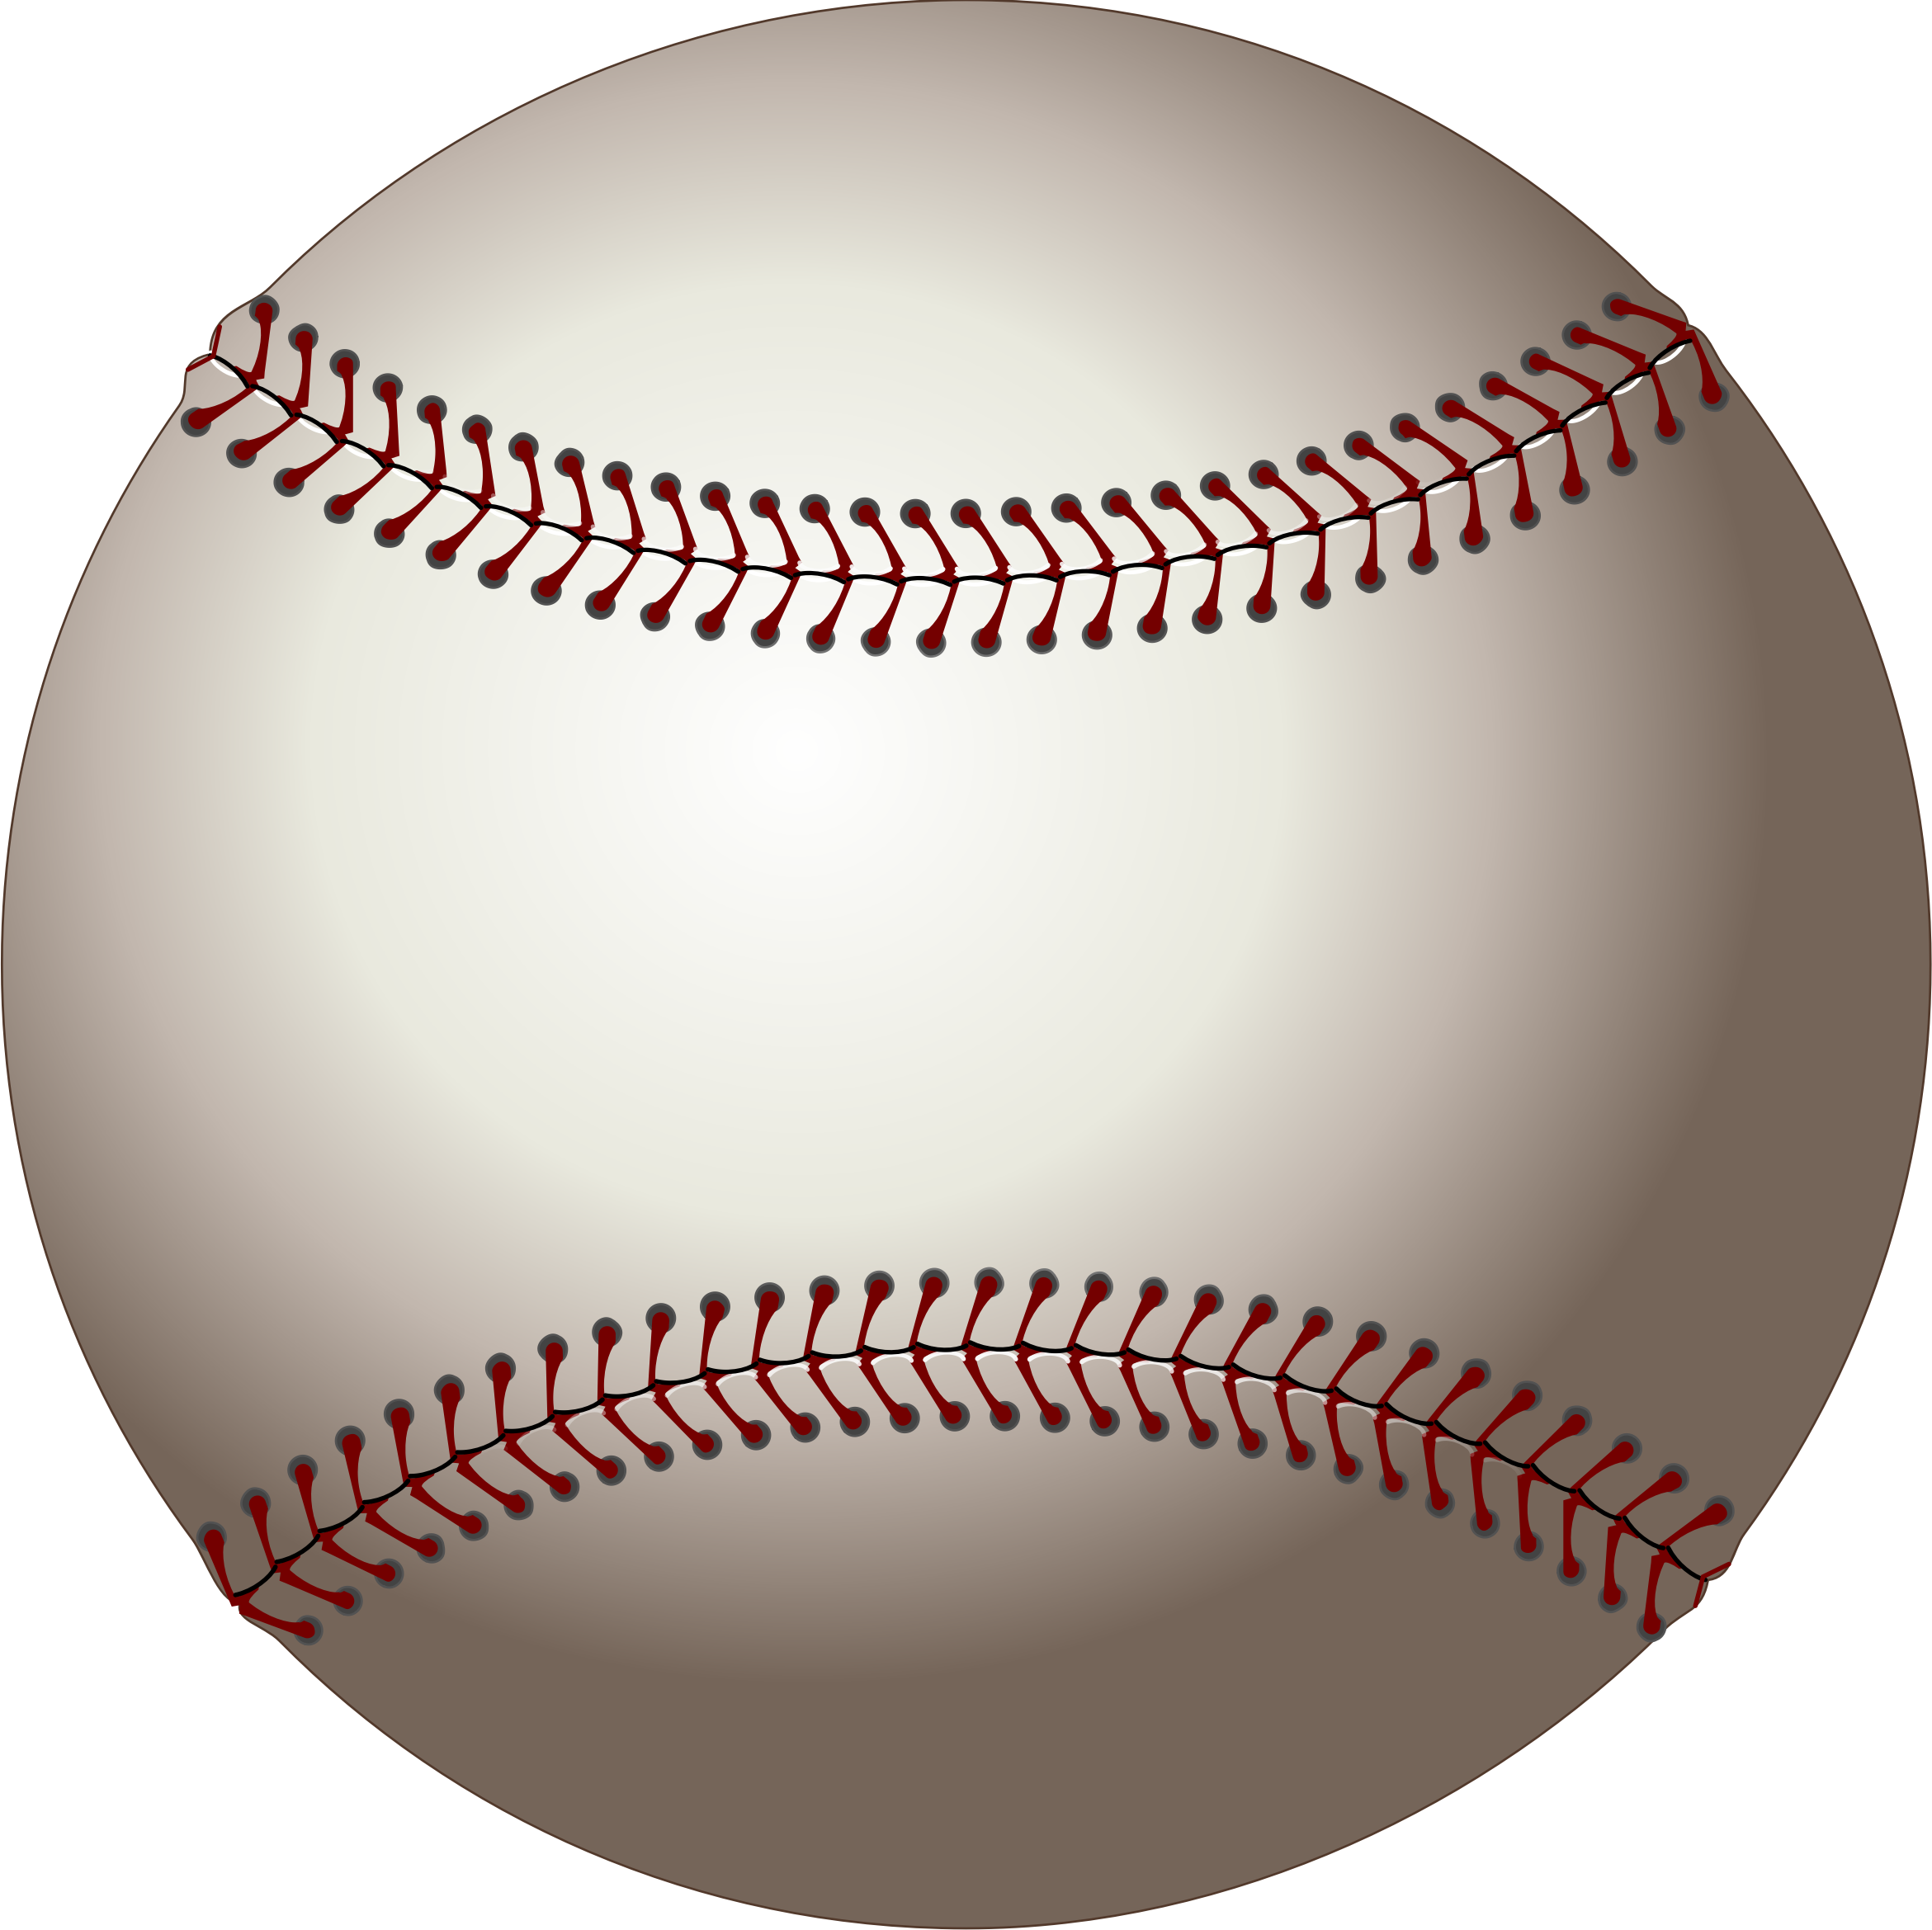 Clipart baseball game graphic transparent Clipart - Baseball noshadow graphic transparent